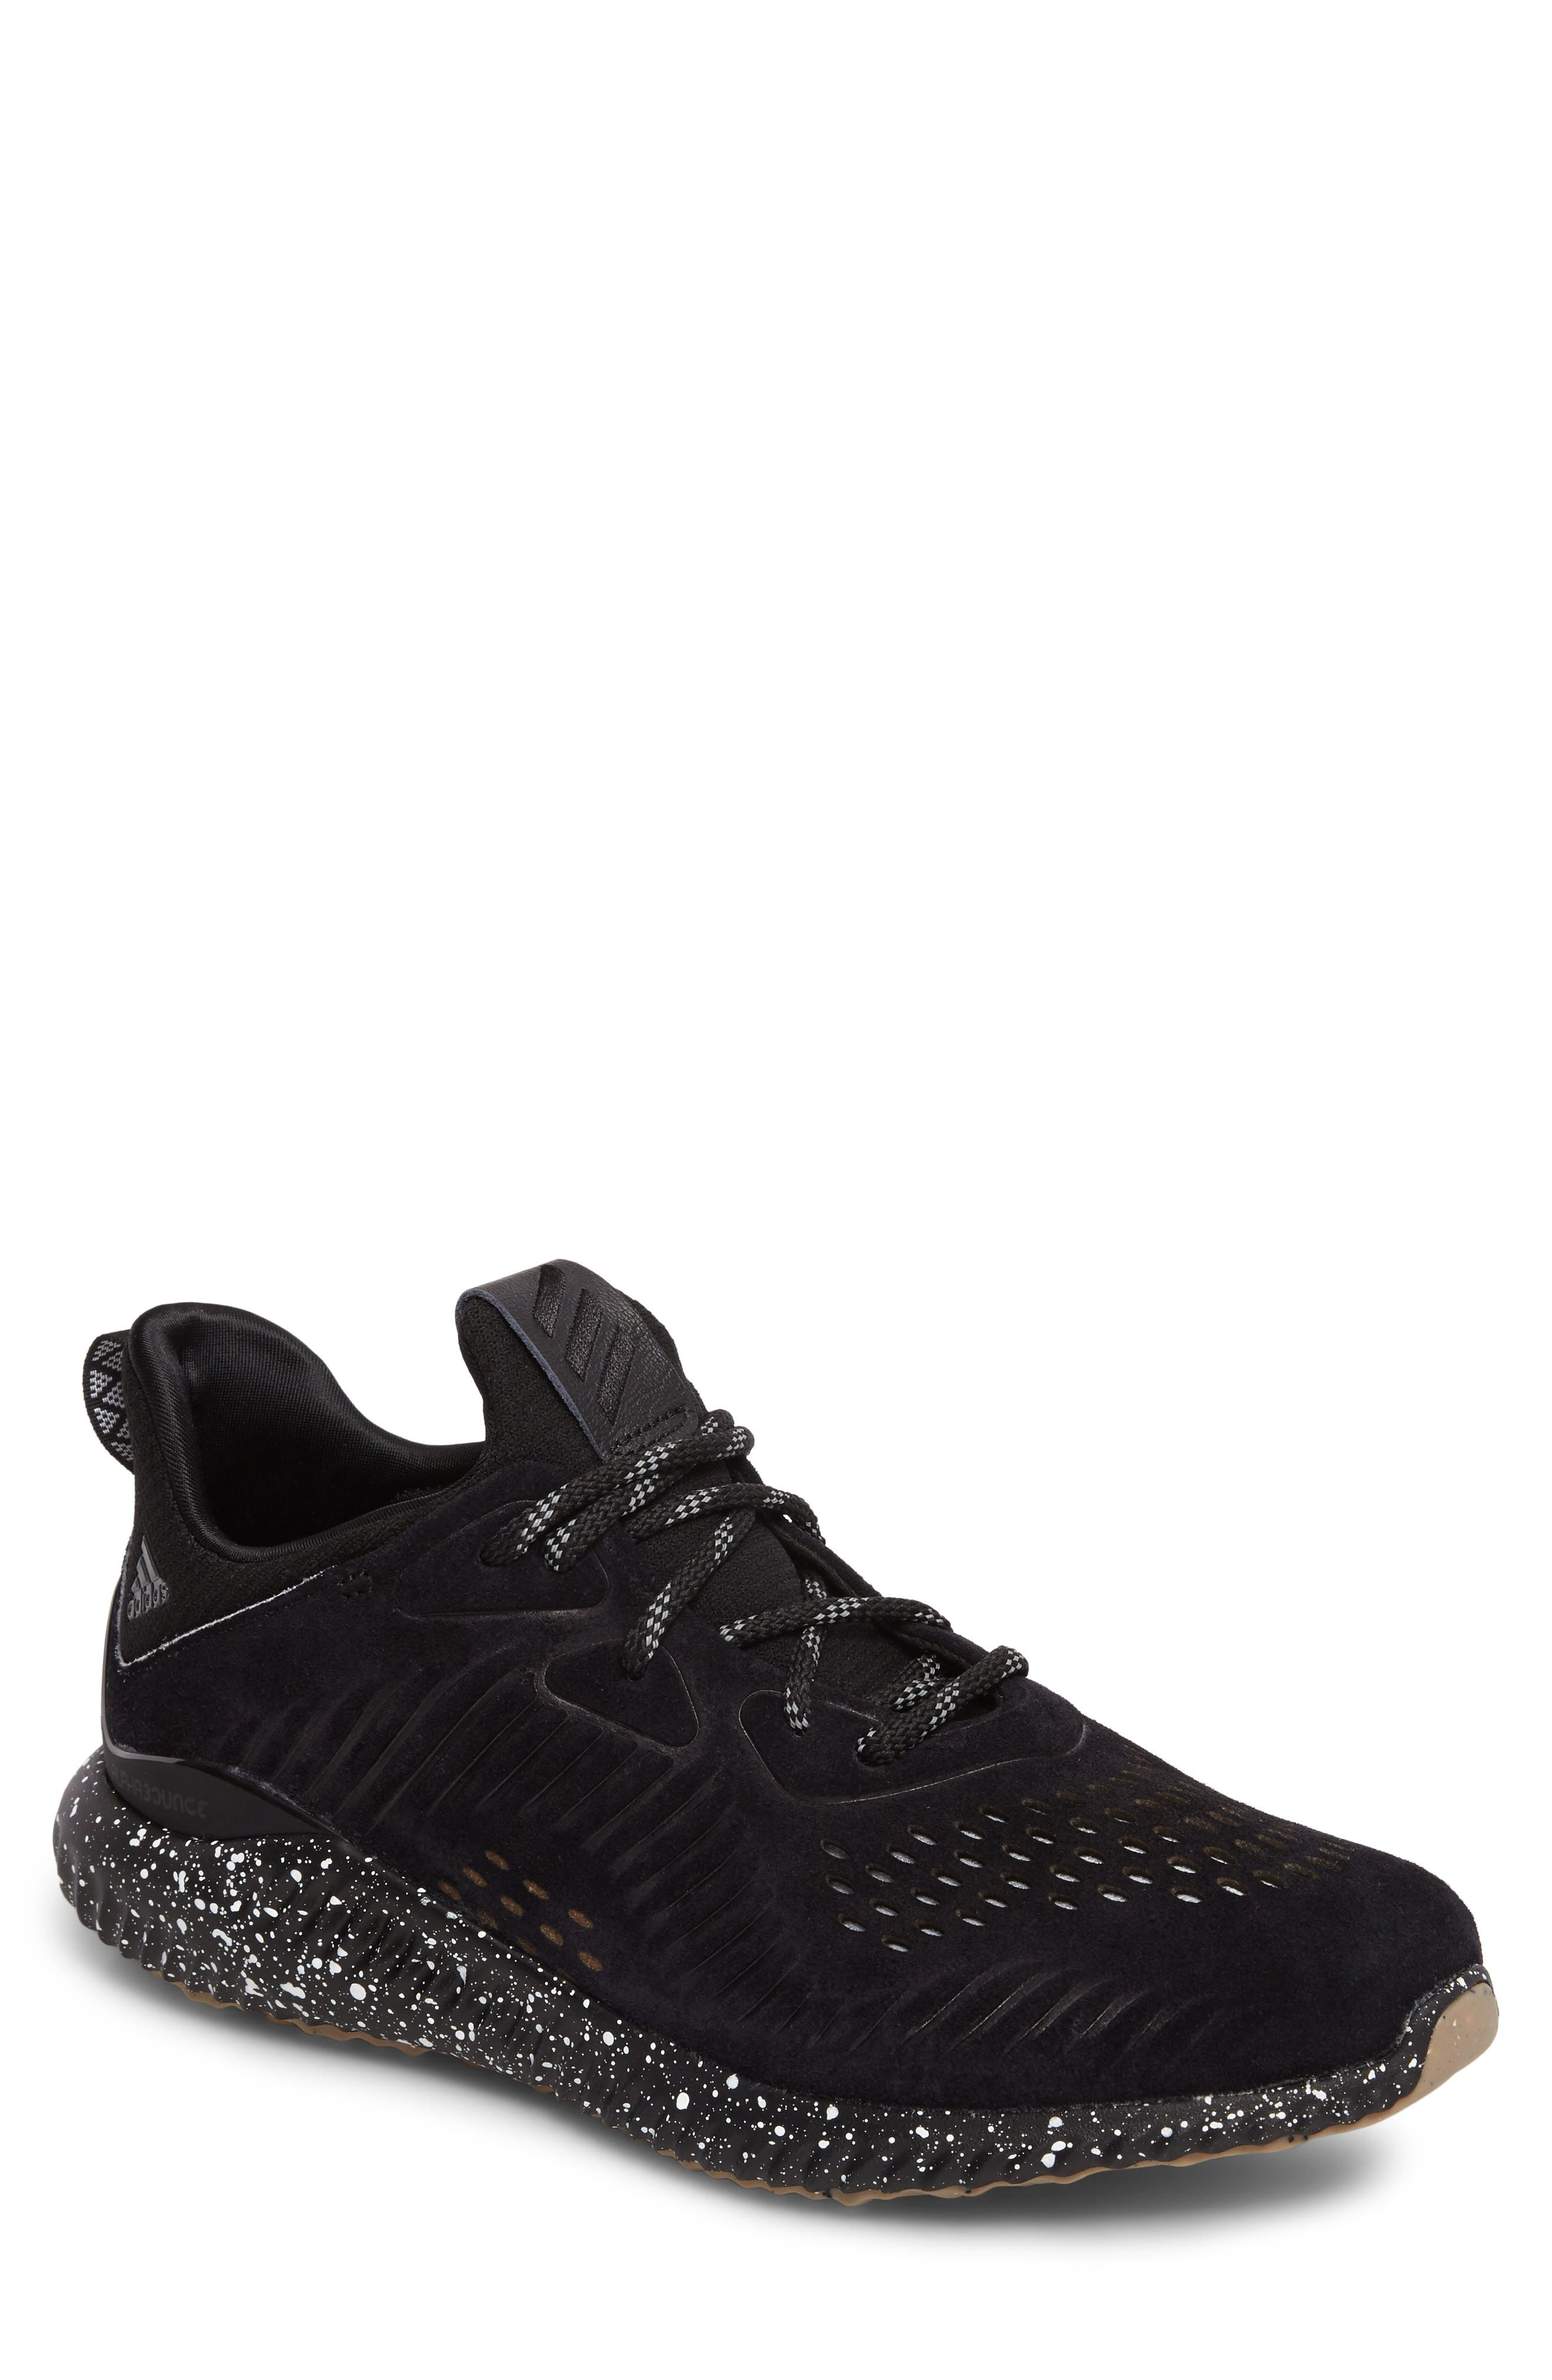 Main Image - adidas AlphaBounce LEA Running Shoe (Men)